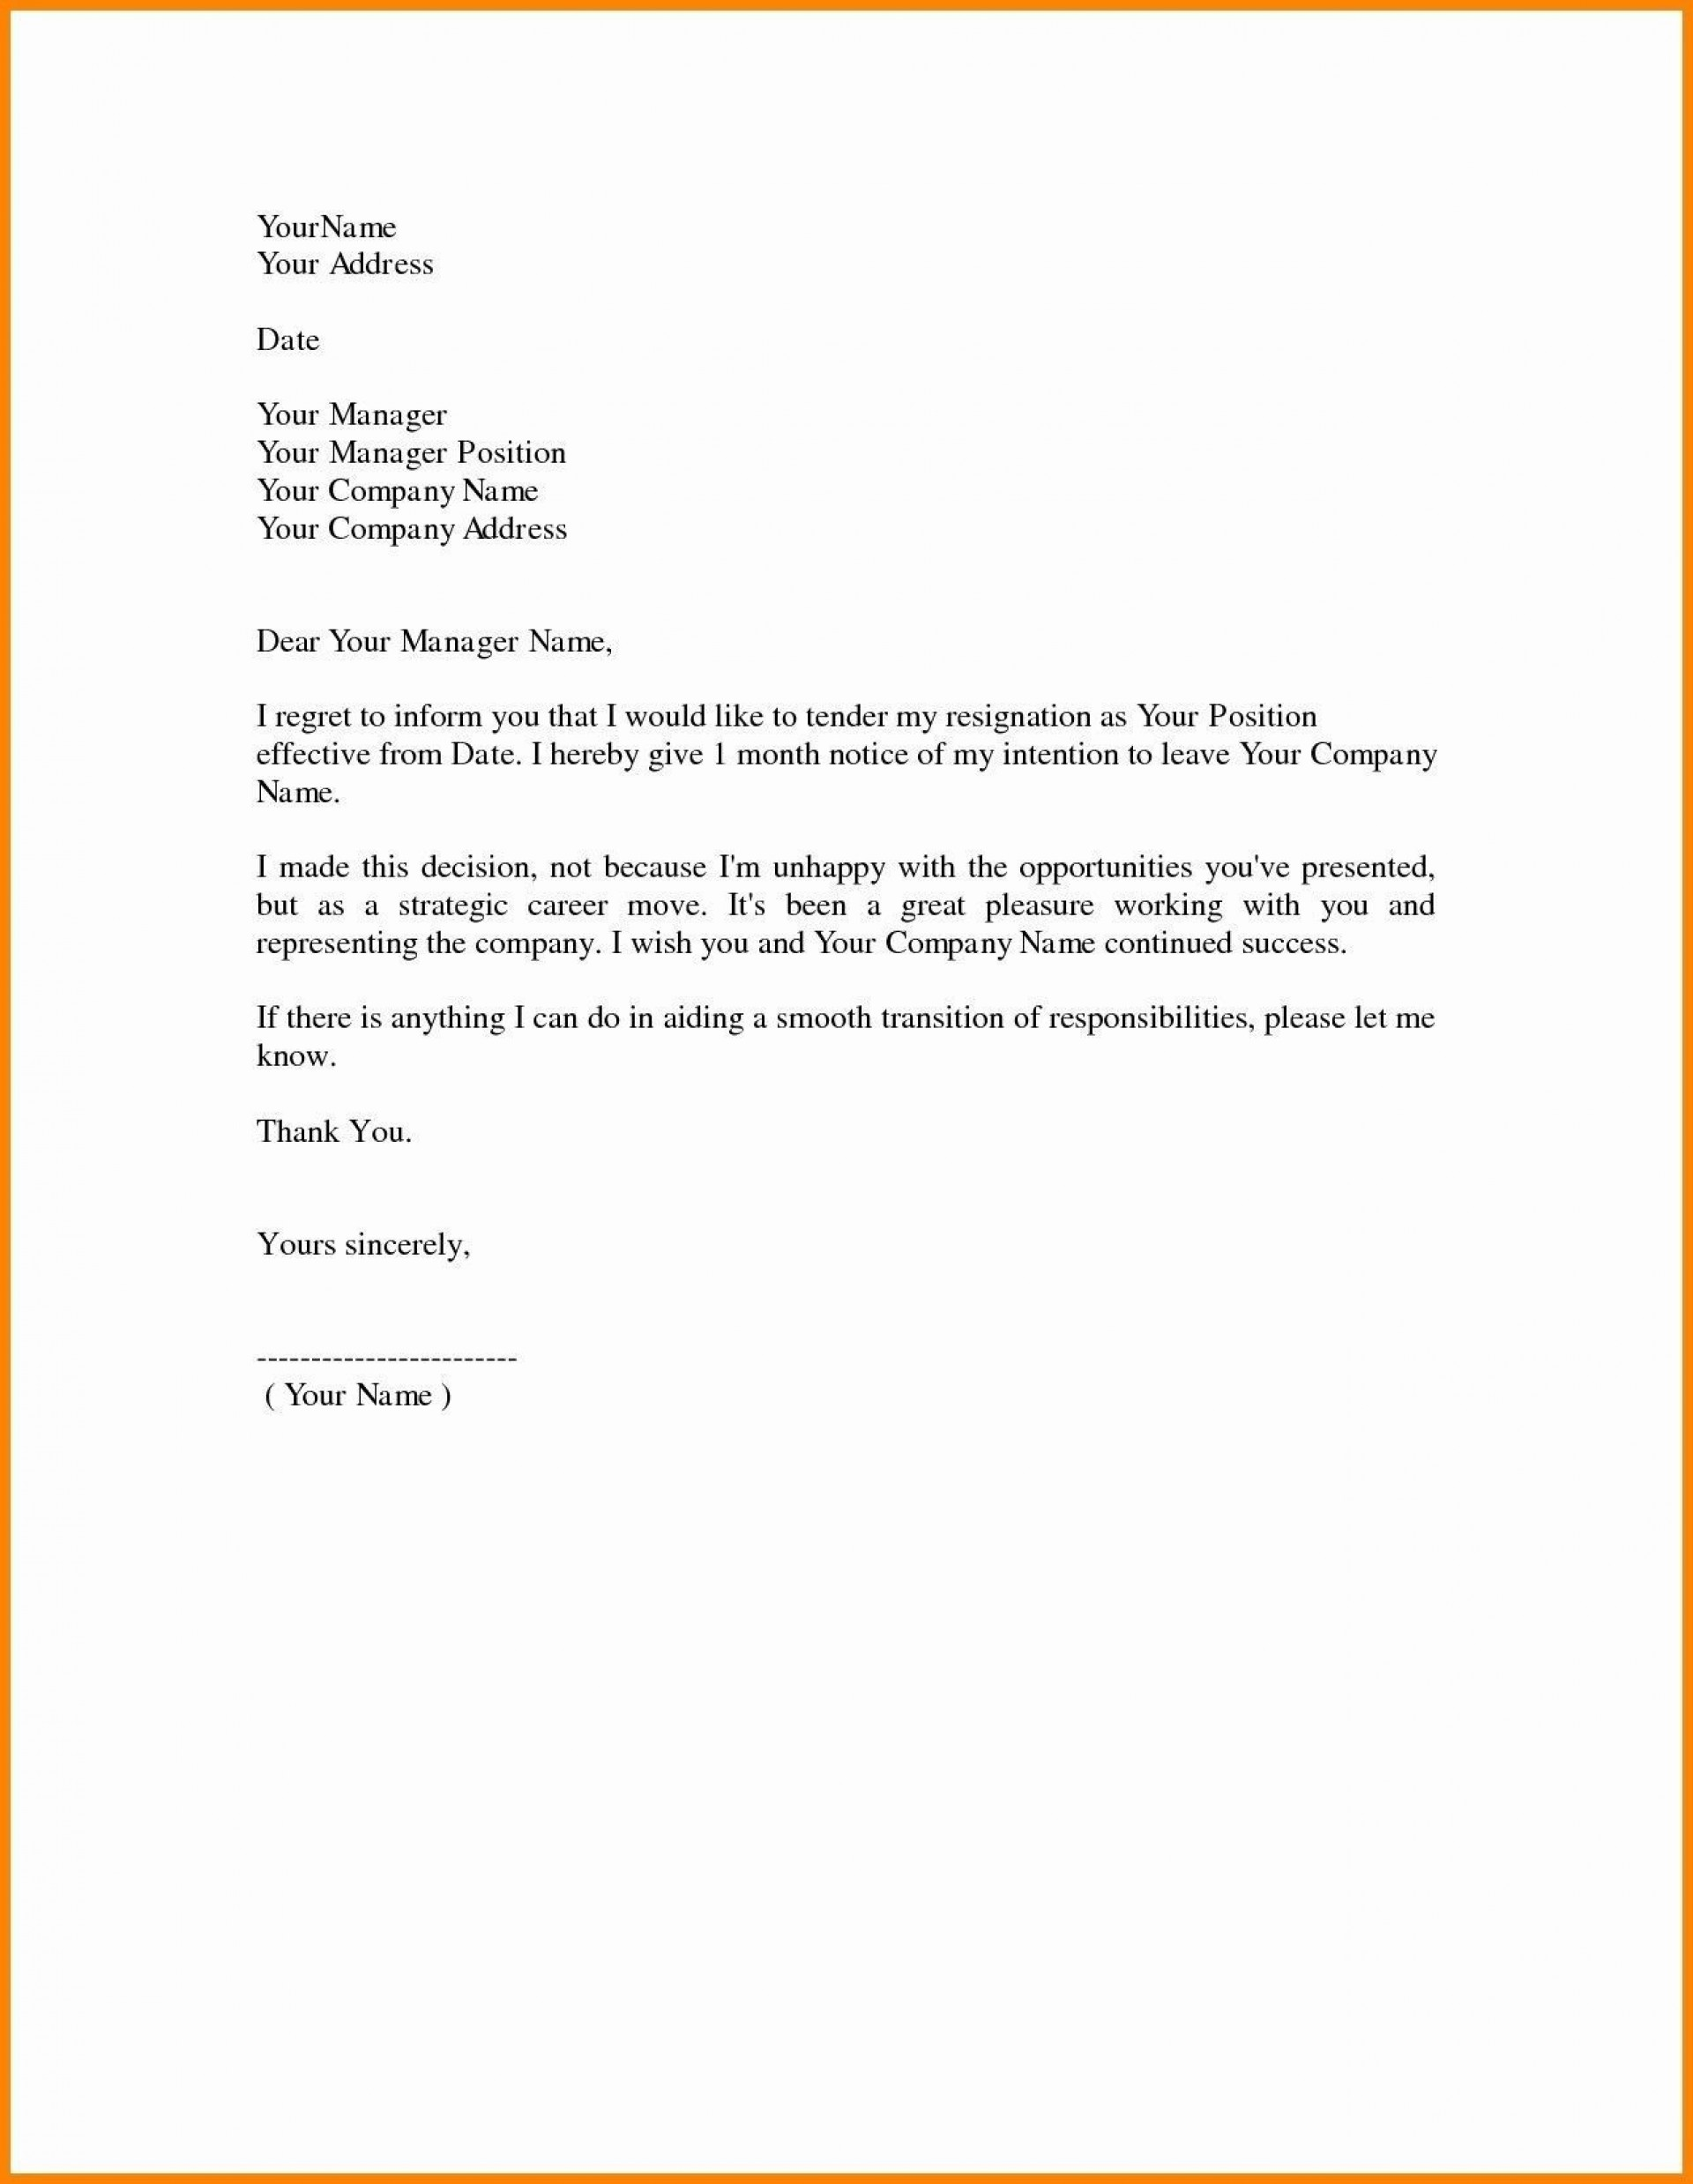 000 Remarkable Template For Letter Of Resignation Idea  Free With Notice Period Word1920